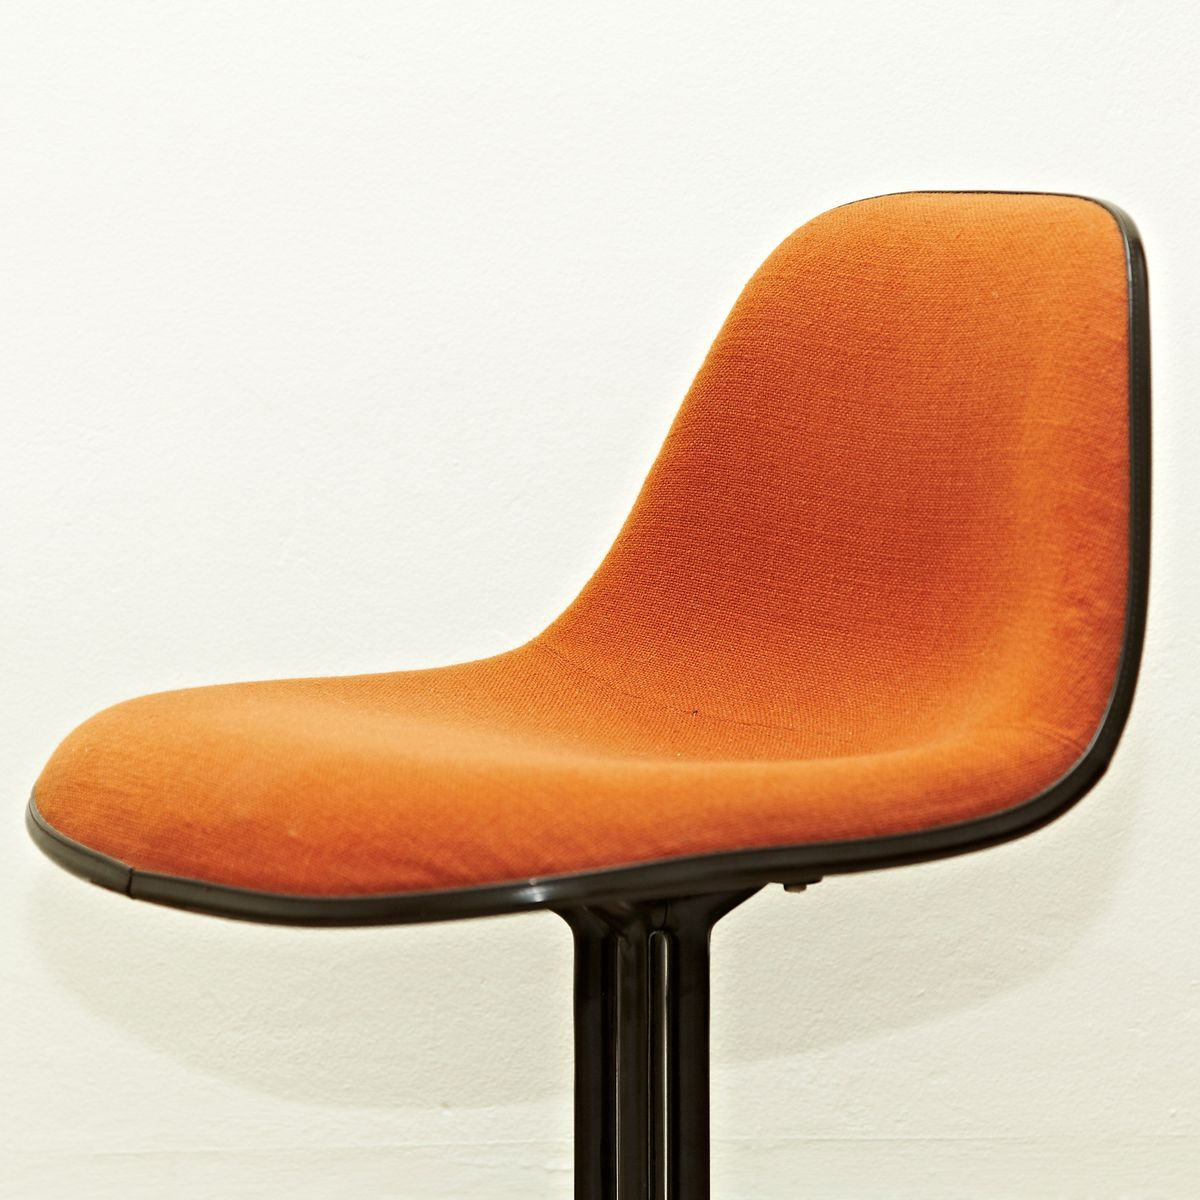 ray eames furniture. la fonda chair by charles u0026 ray eames for herman miller 1950s furniture n